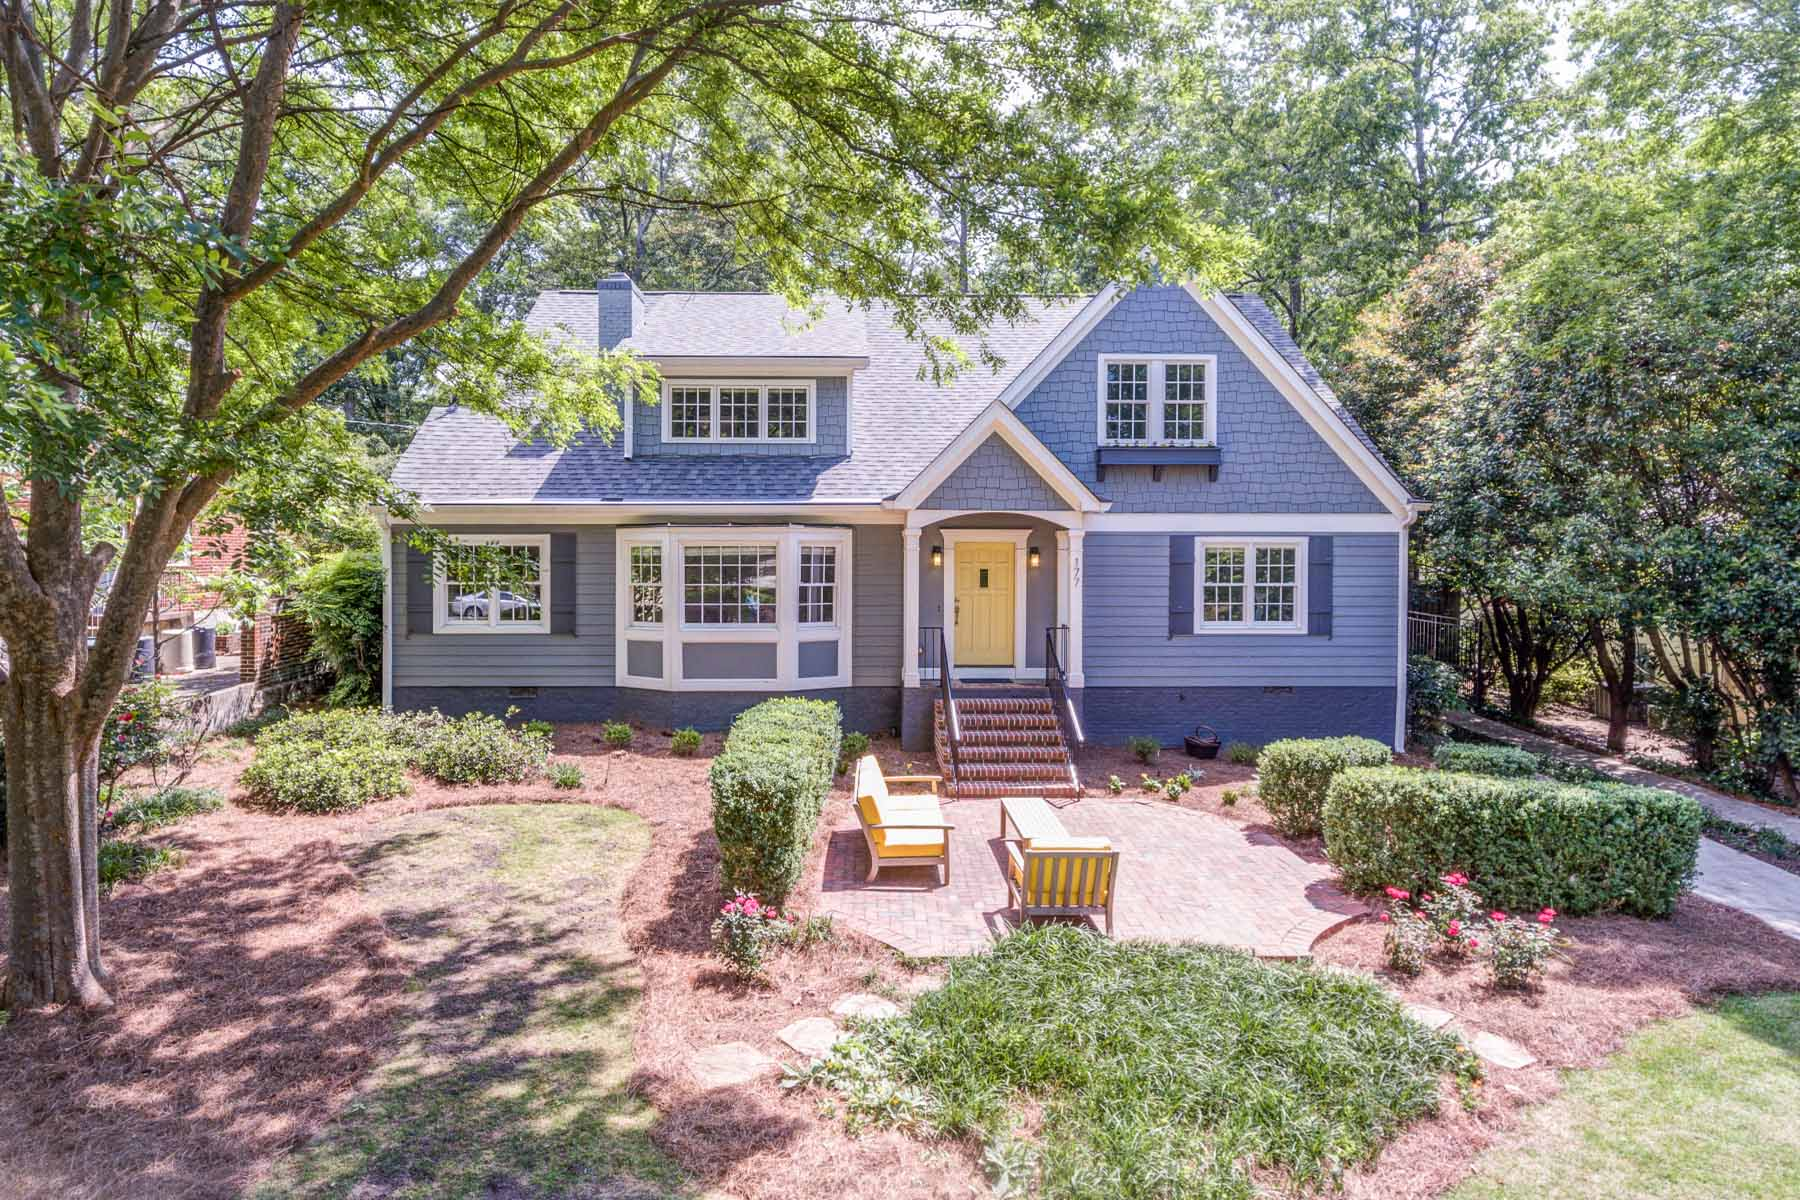 Single Family Home for Active at Simply Stunning 177 Mount Vernon Dr Decatur, Georgia 30030 United States